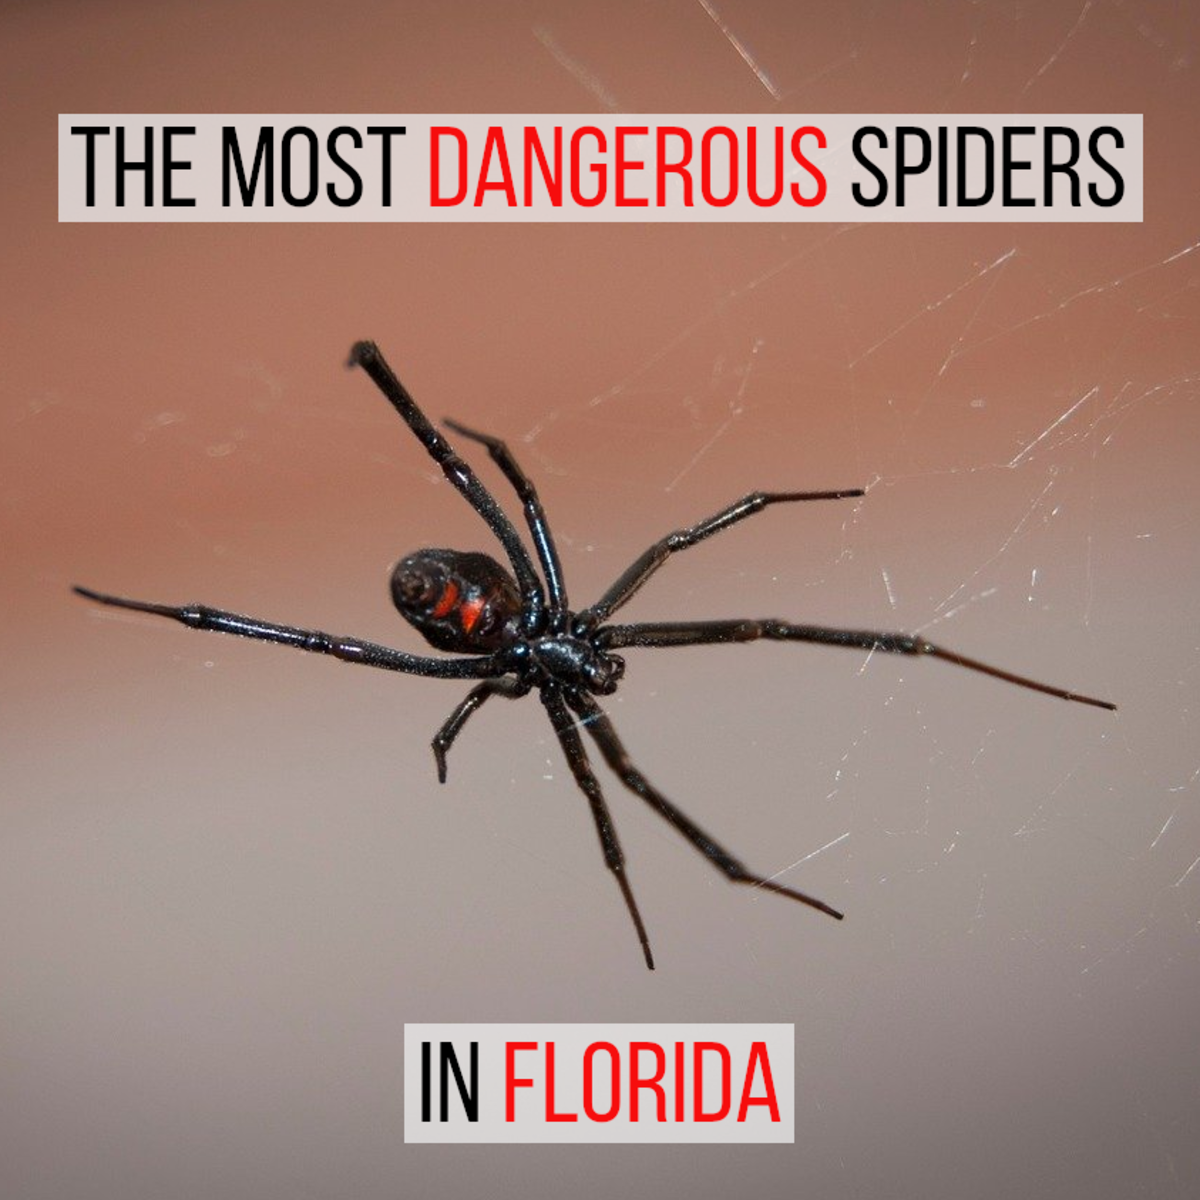 The Two Most Dangerous Spiders in Florida